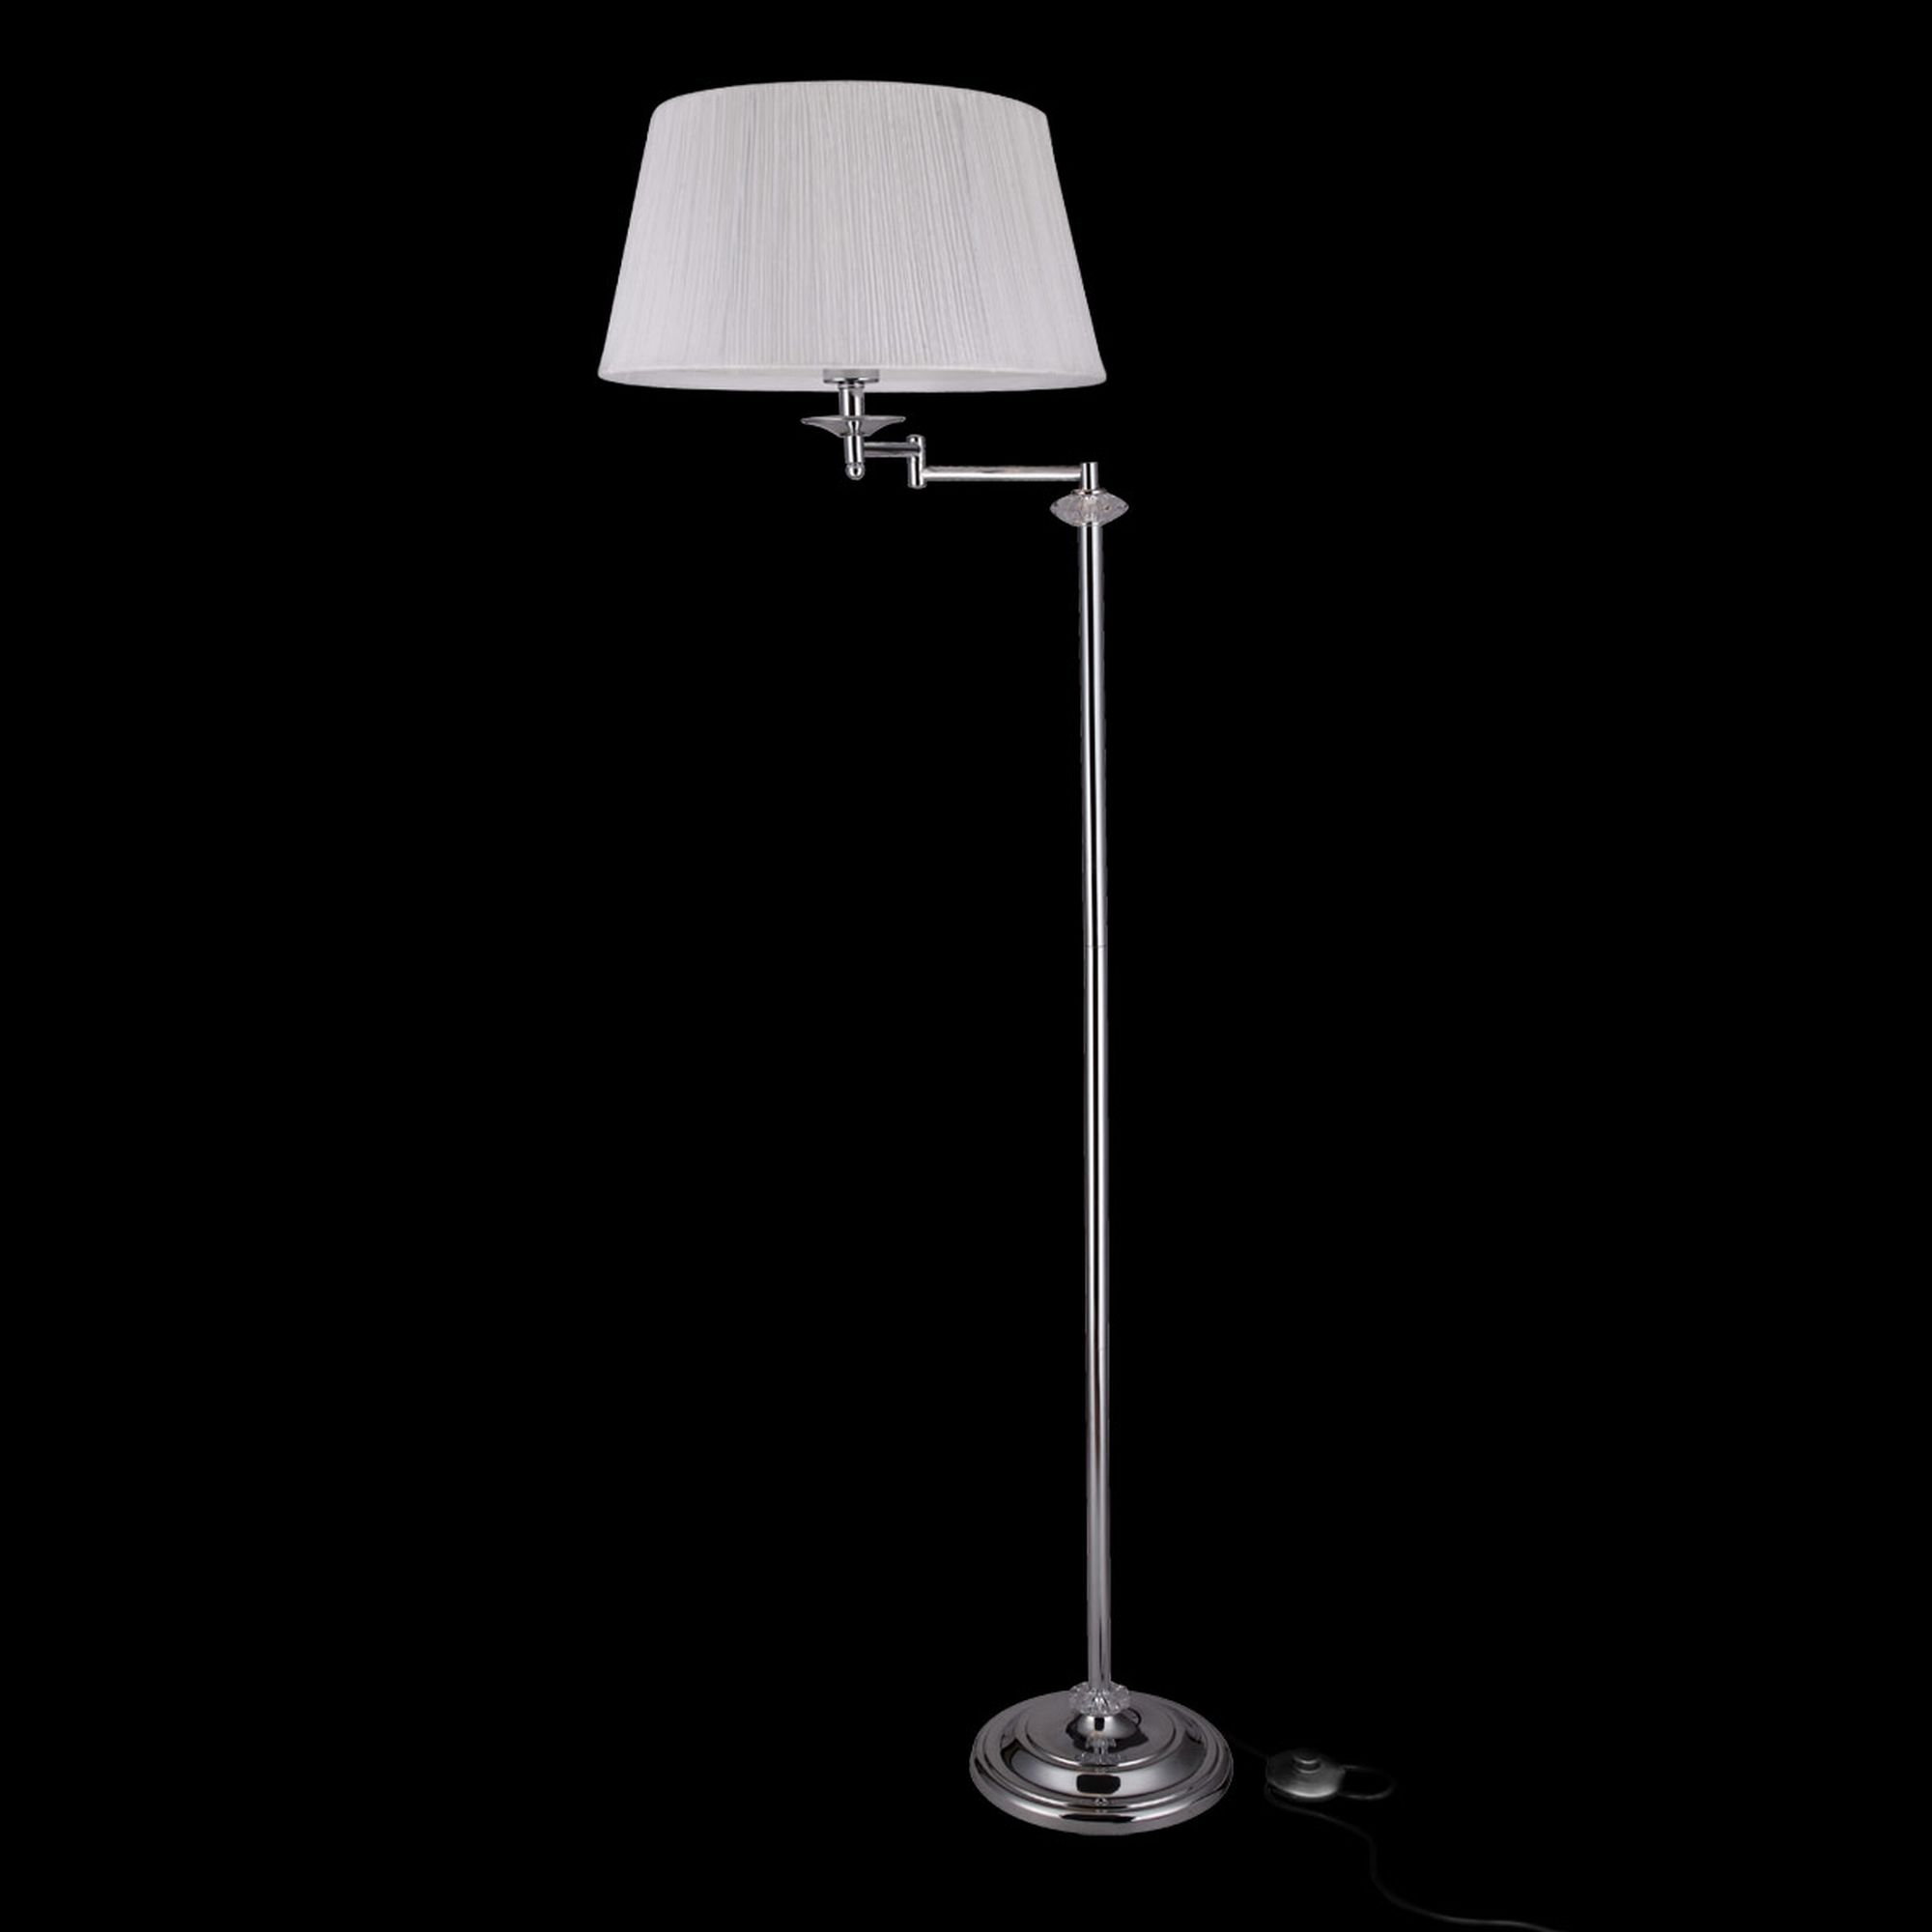 elegance lampadaire lampadaire lampe lampe de salon lumi re lampadaire ebay. Black Bedroom Furniture Sets. Home Design Ideas